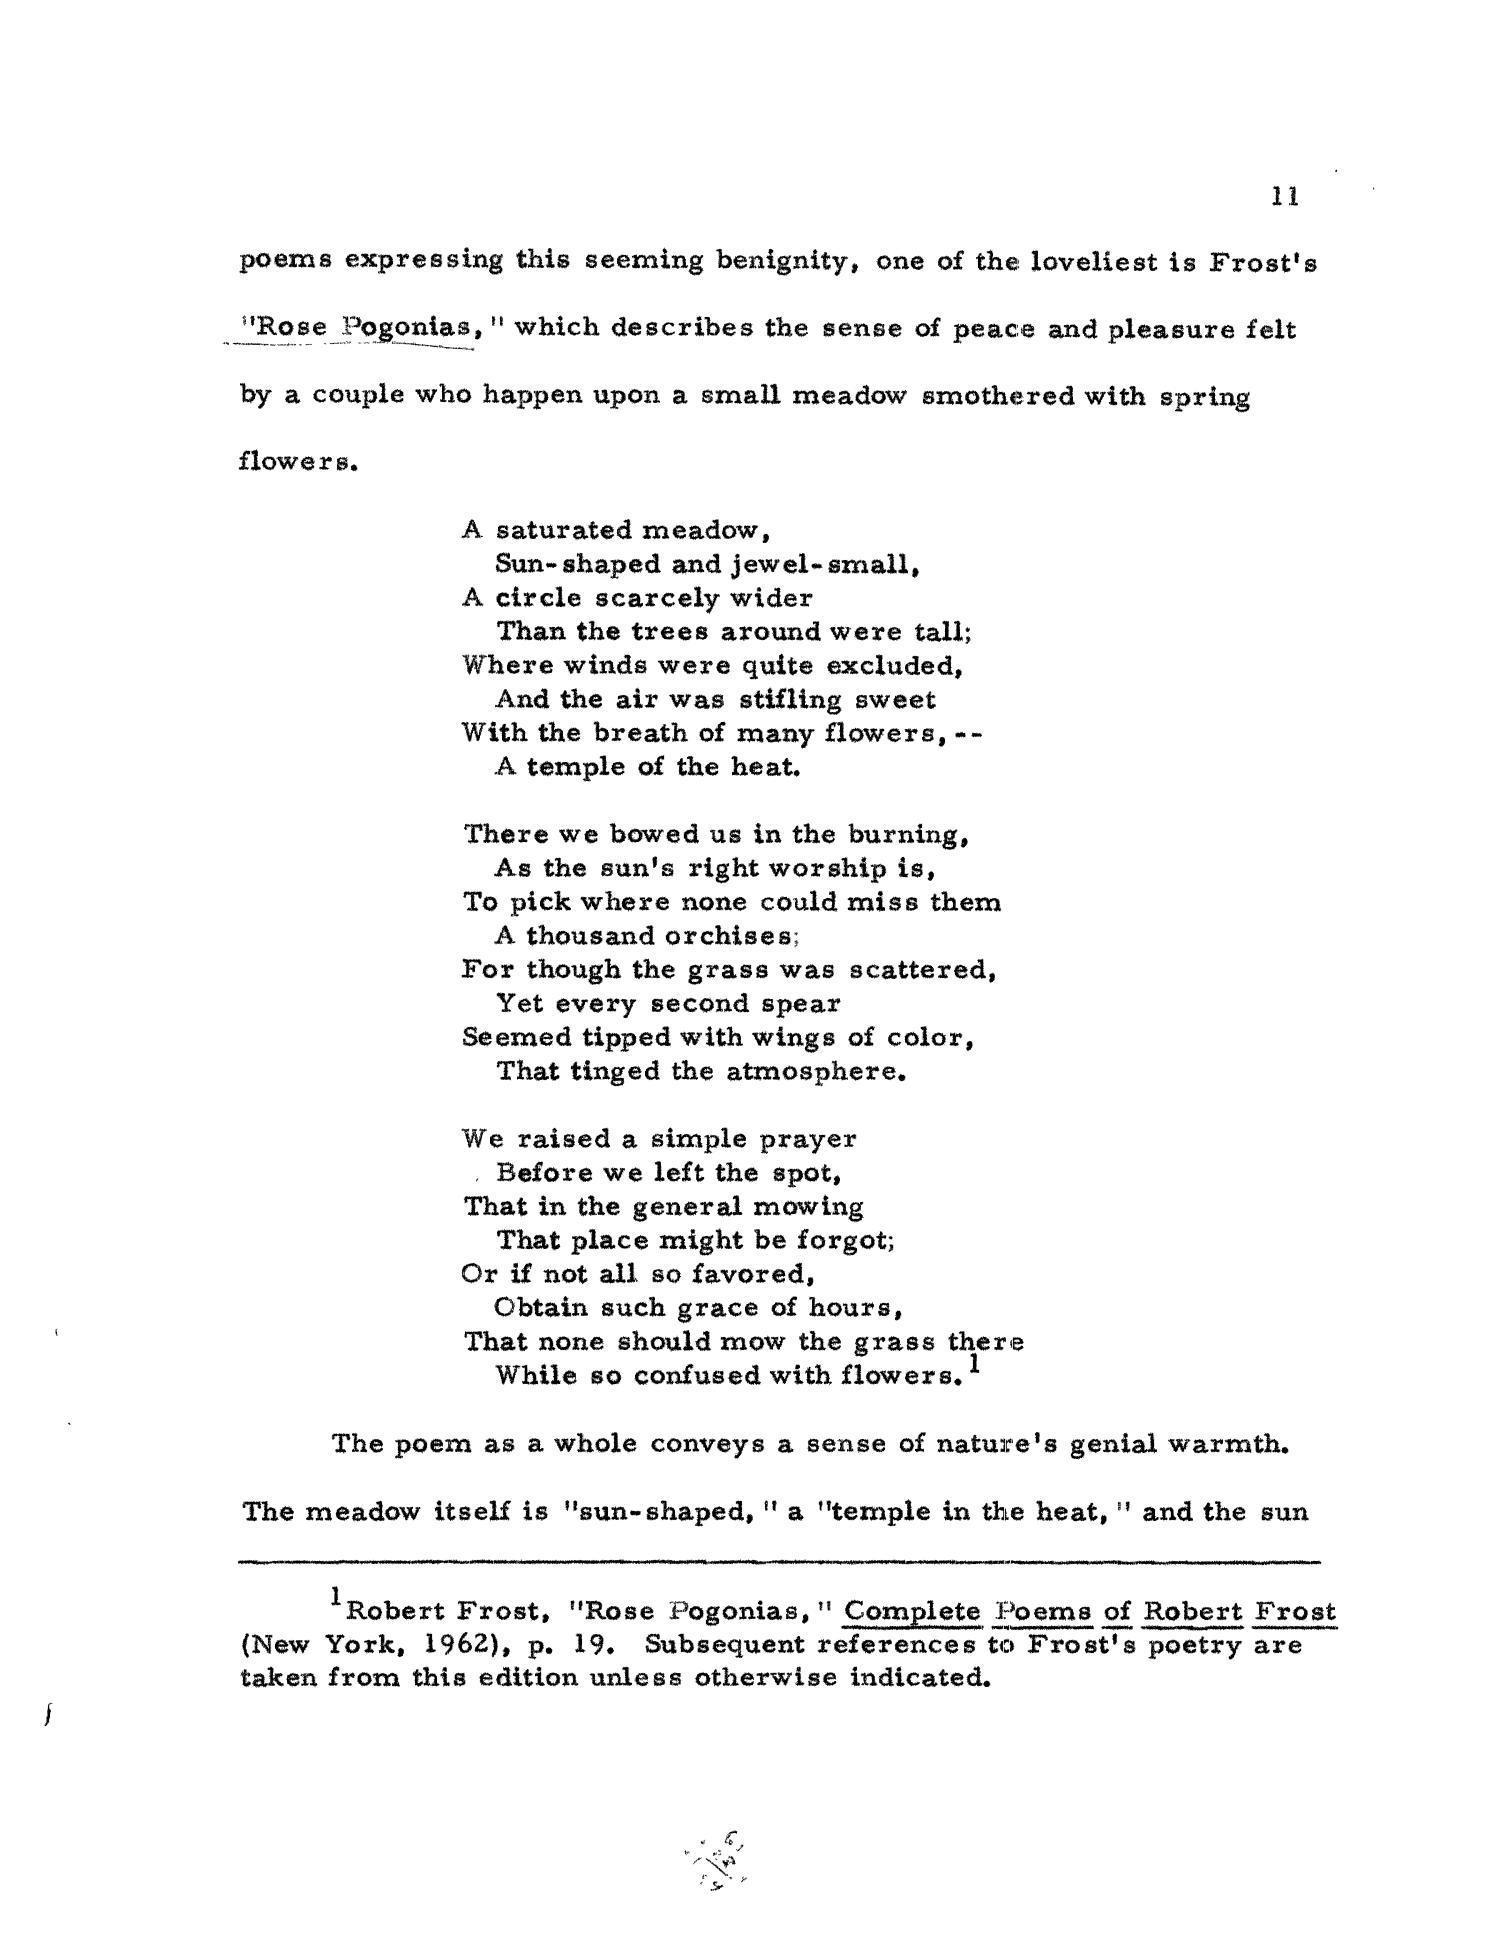 robert frost man and nature Free term papers & essays - frosts connection between nature and man, poetry.